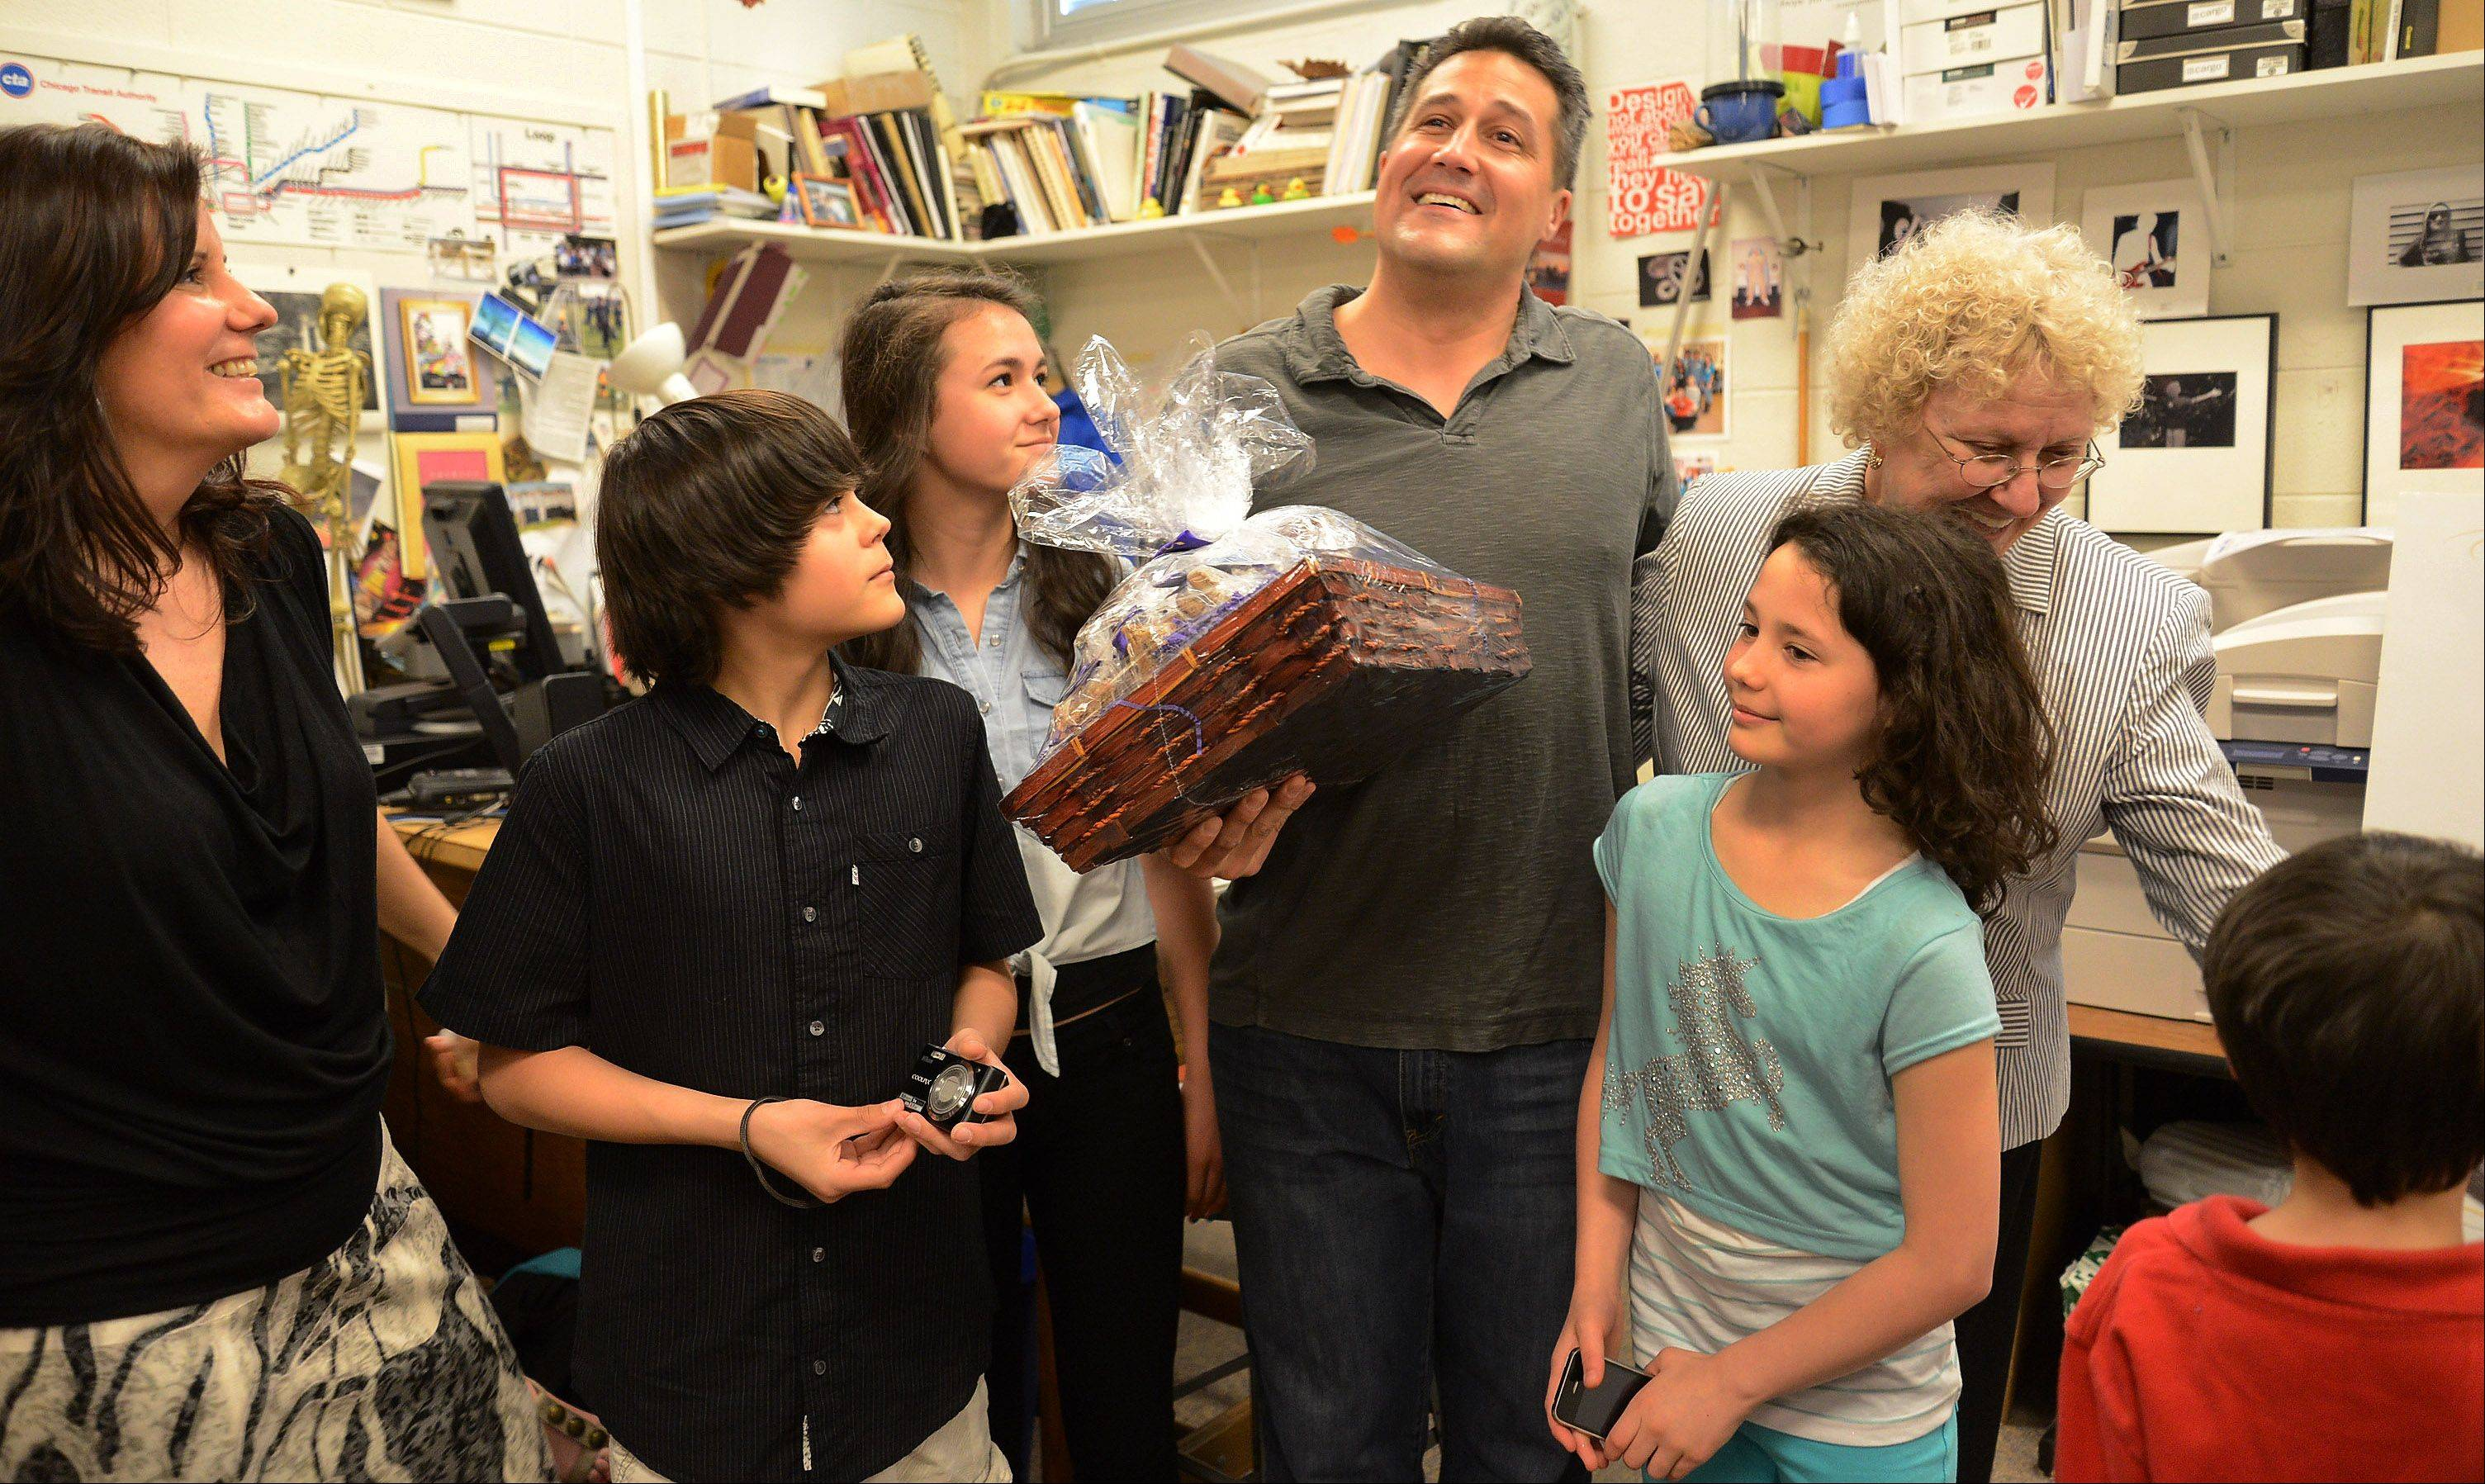 Golden Apple recipient Gregory Regalado, who teaches art, photography and advanced digital imaging at Maine West High School in Des Plaines, is surrounded by his family. From left, wife Sue, son Jax, daughter Isabel, daughter Kayci, mother Beverly and son Luke.